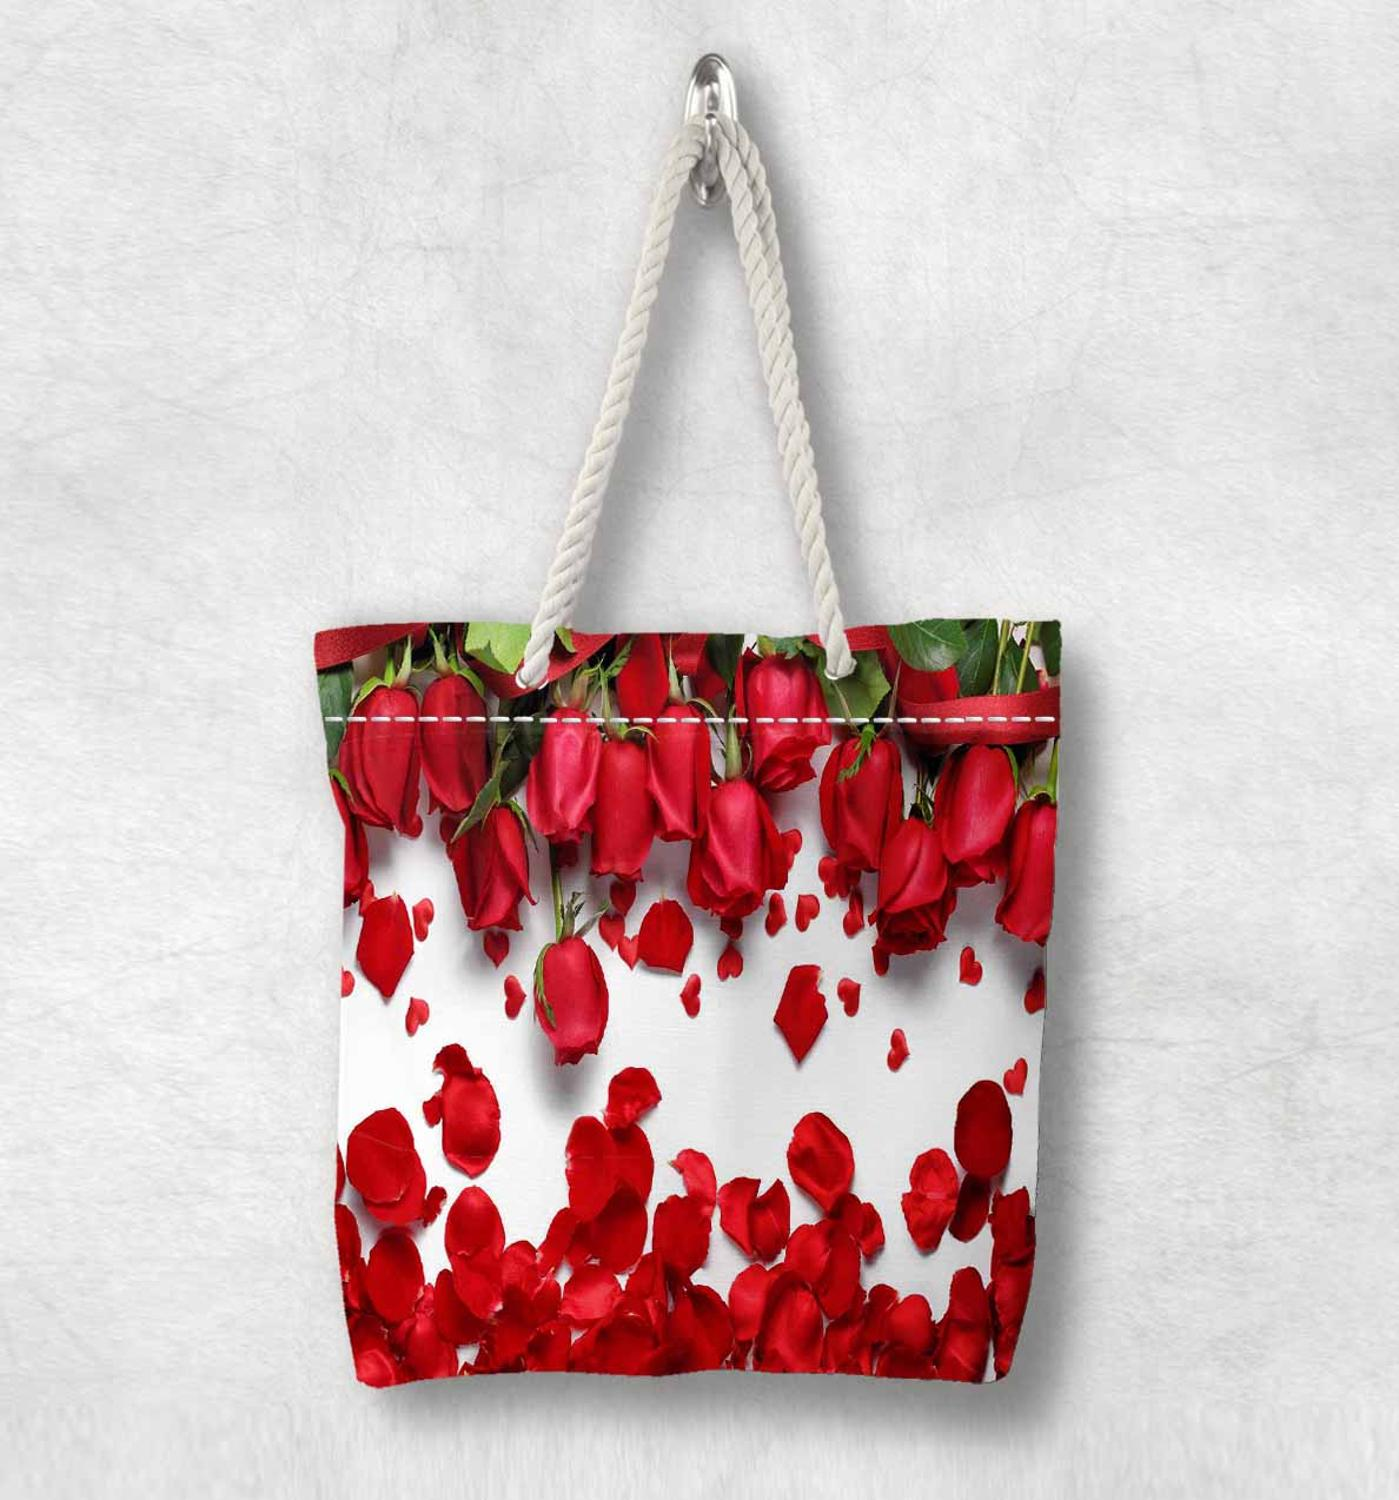 Else Red Romantic Roses Flowers Floral New Fashion White Rope Handle Canvas Bag Cotton Canvas Zippered Tote Bag Shoulder Bag